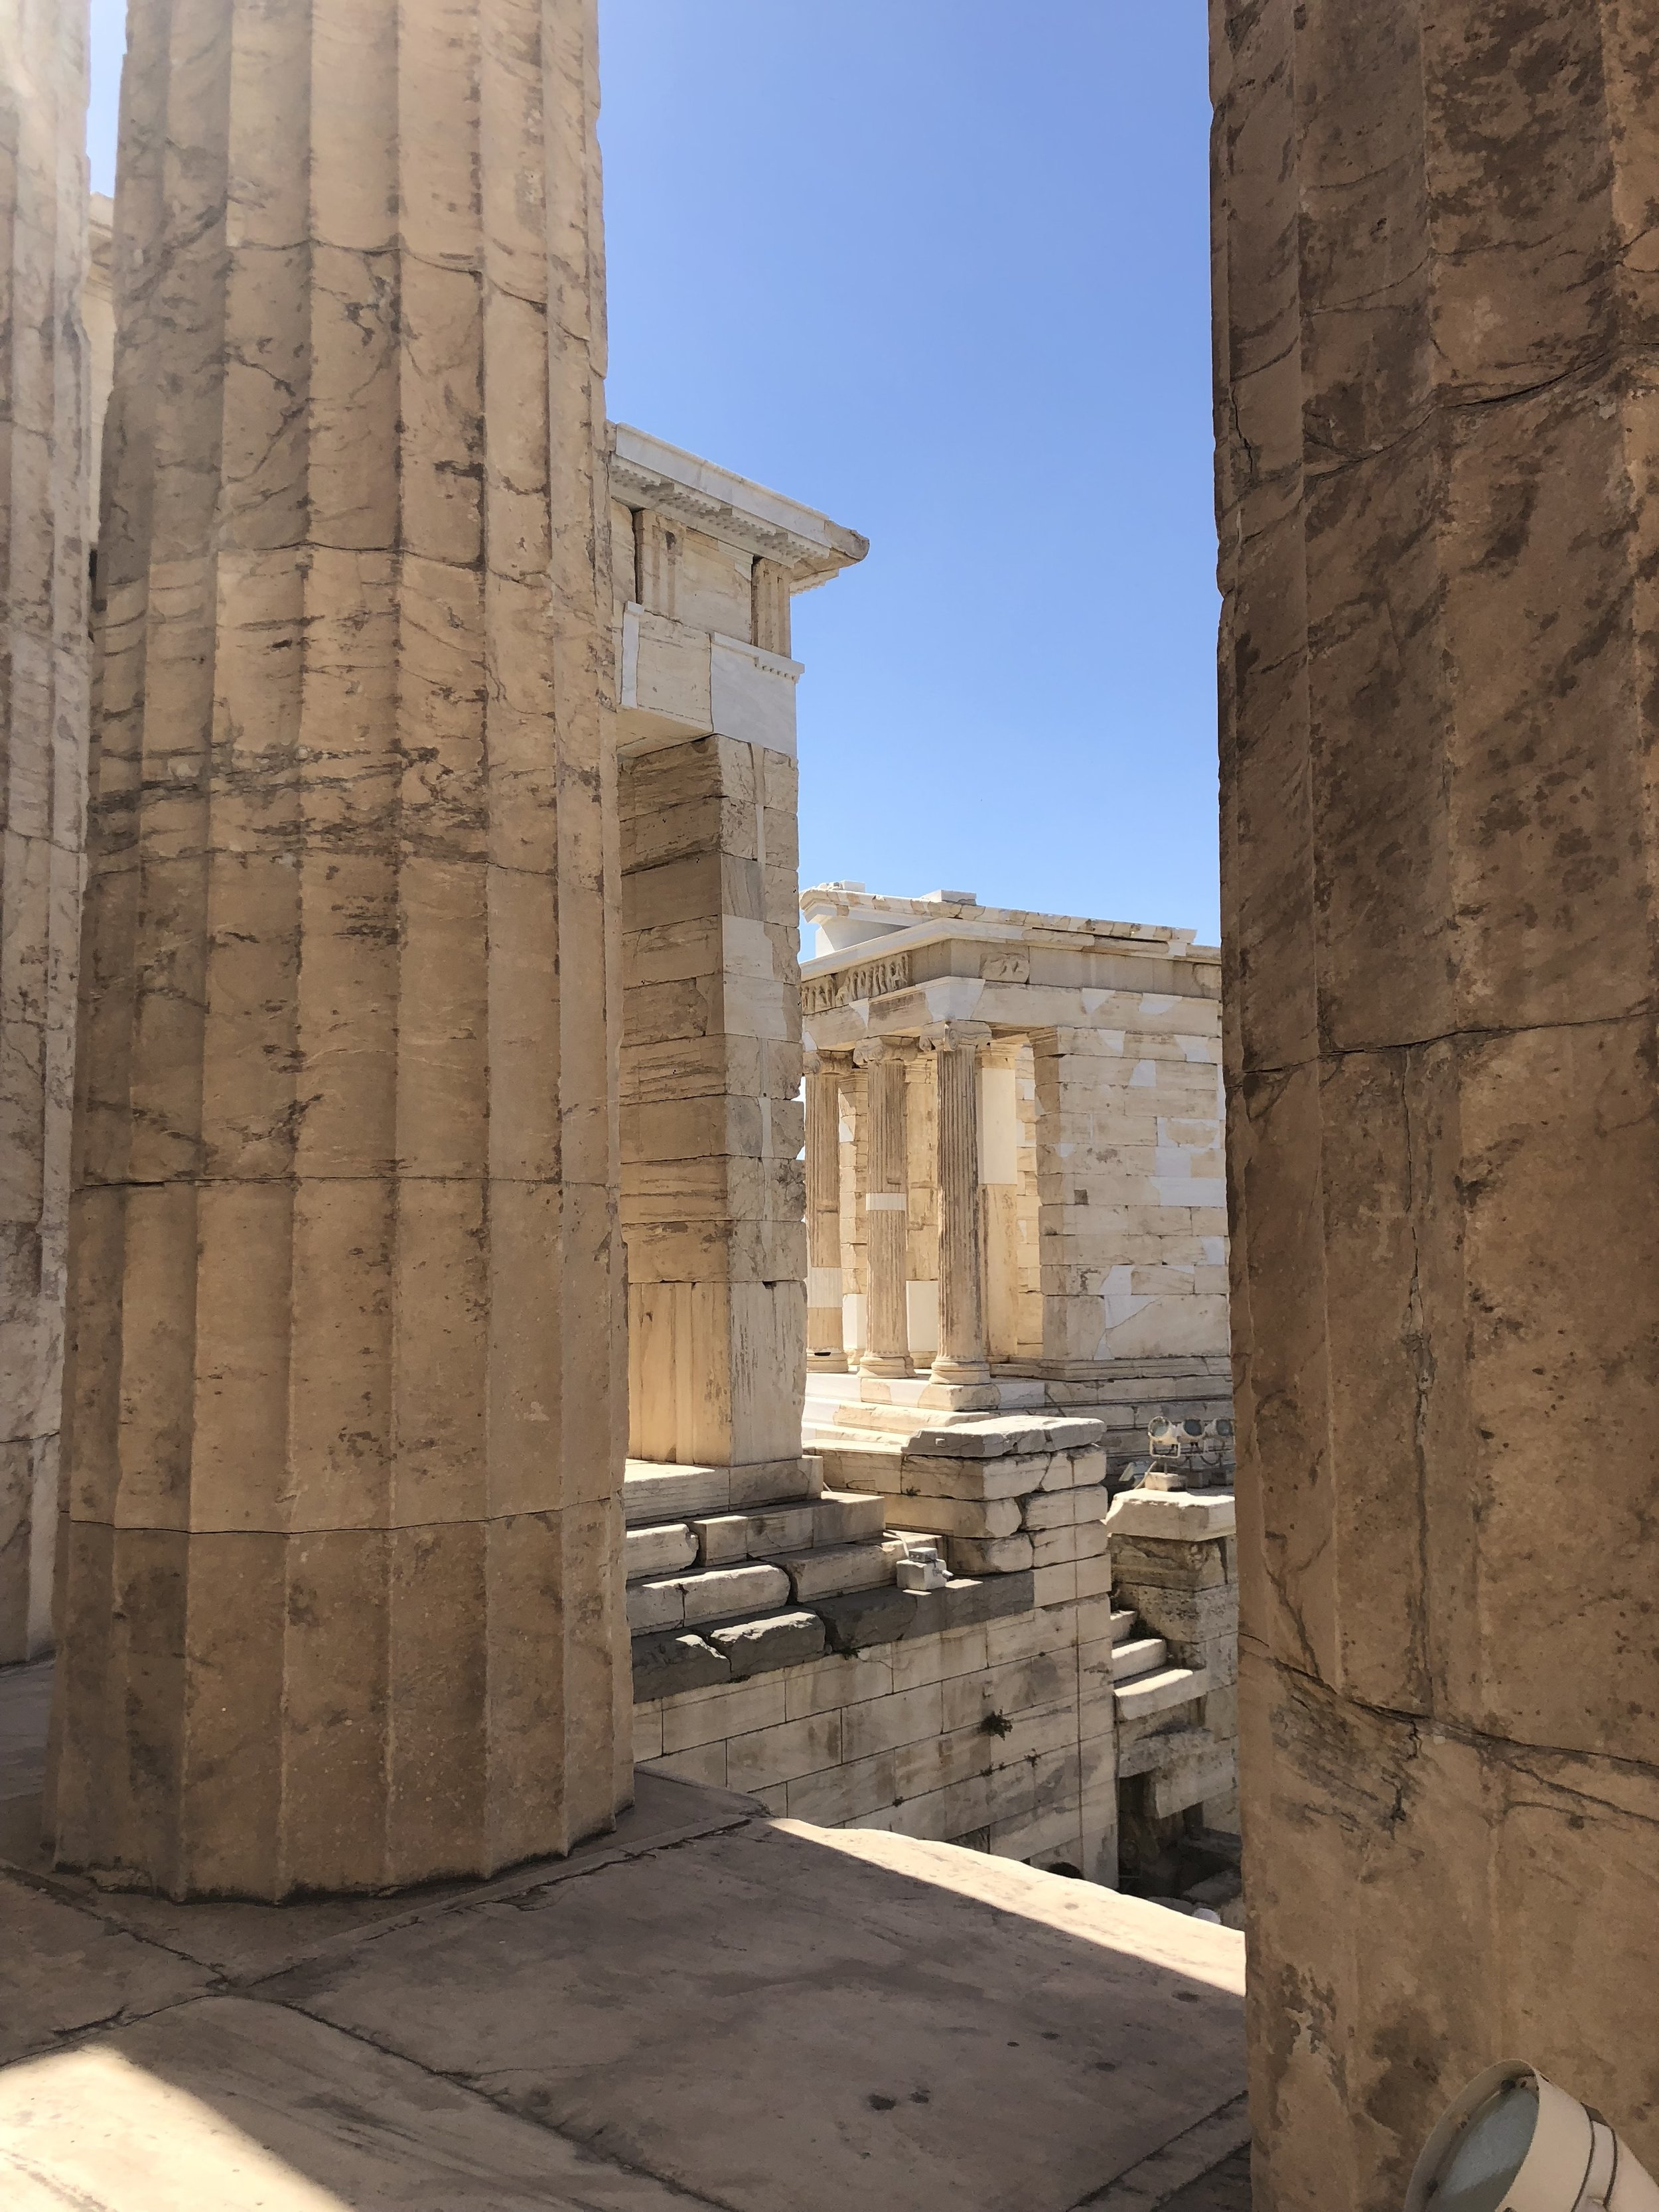 View of the Sanctuary of Athena Nike through the Propylaea's Entranceway